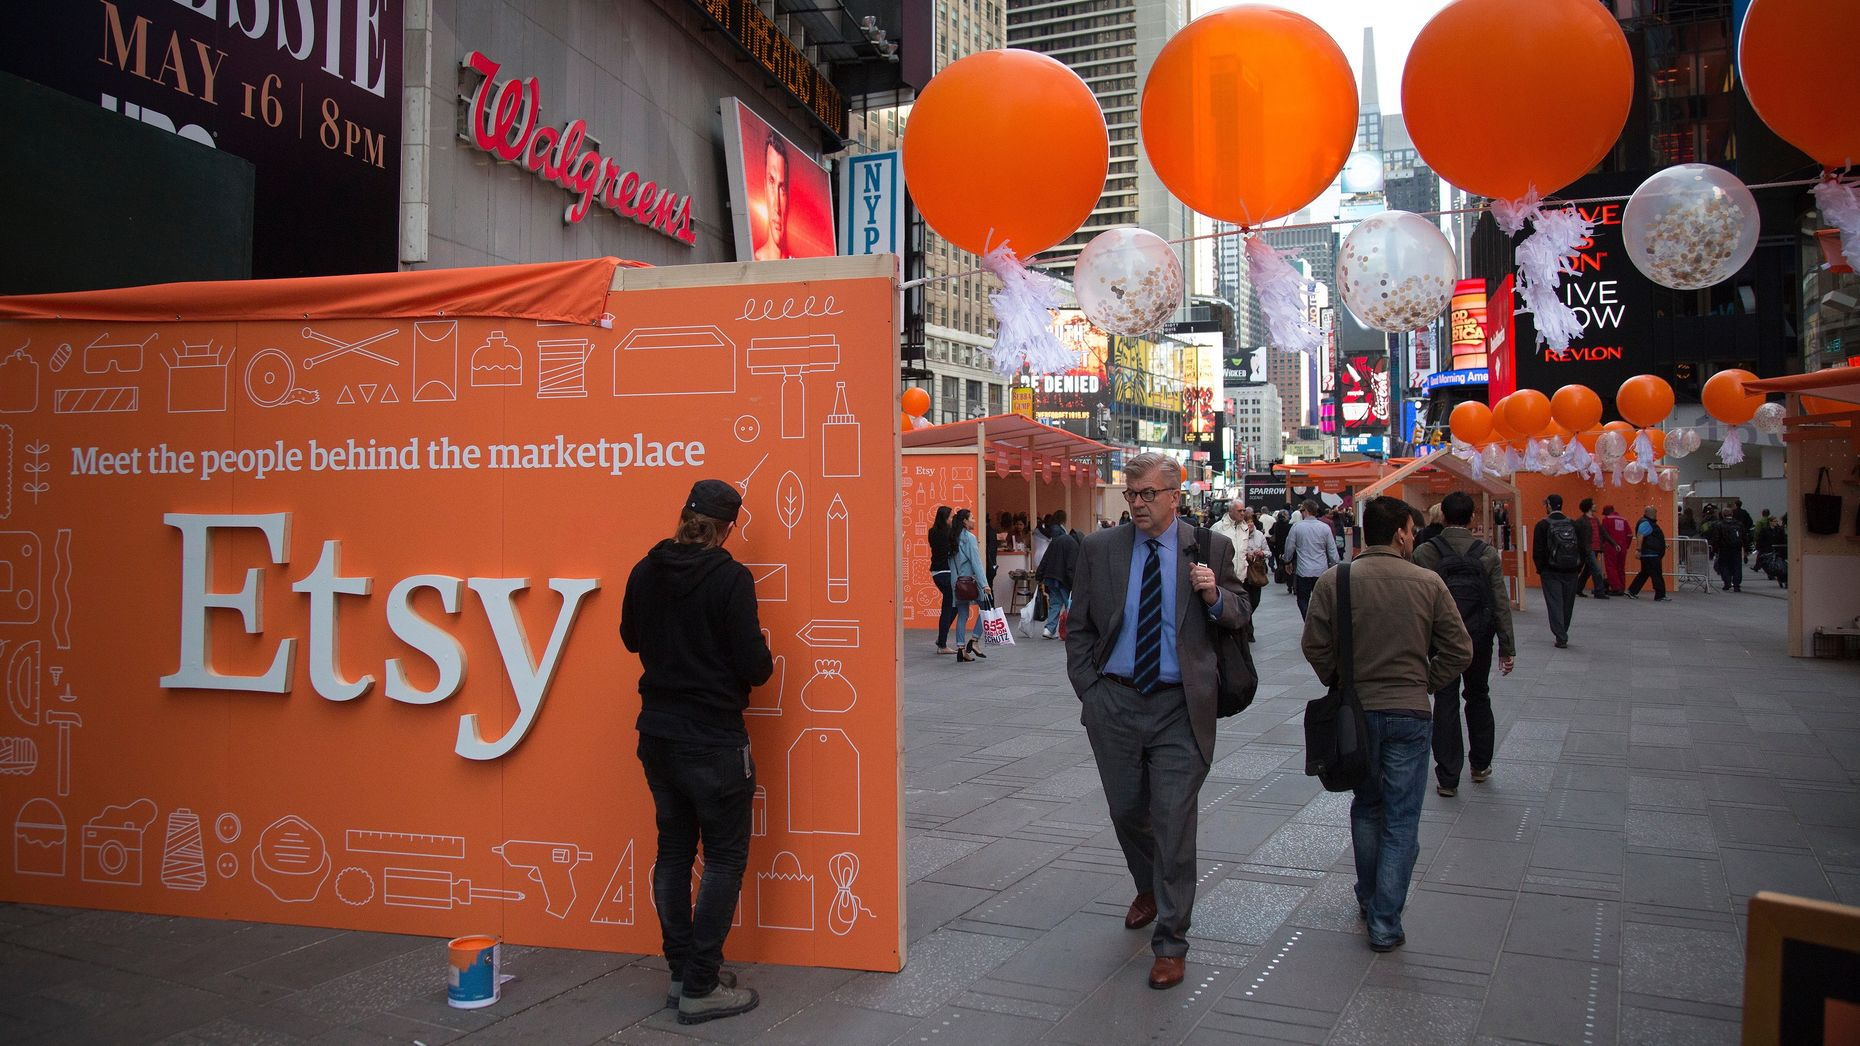 Merchants who use Etsy display their wares outside the Nasdaq MarketSite in New York the day Etsy went public last year. Photo by Bloomberg.